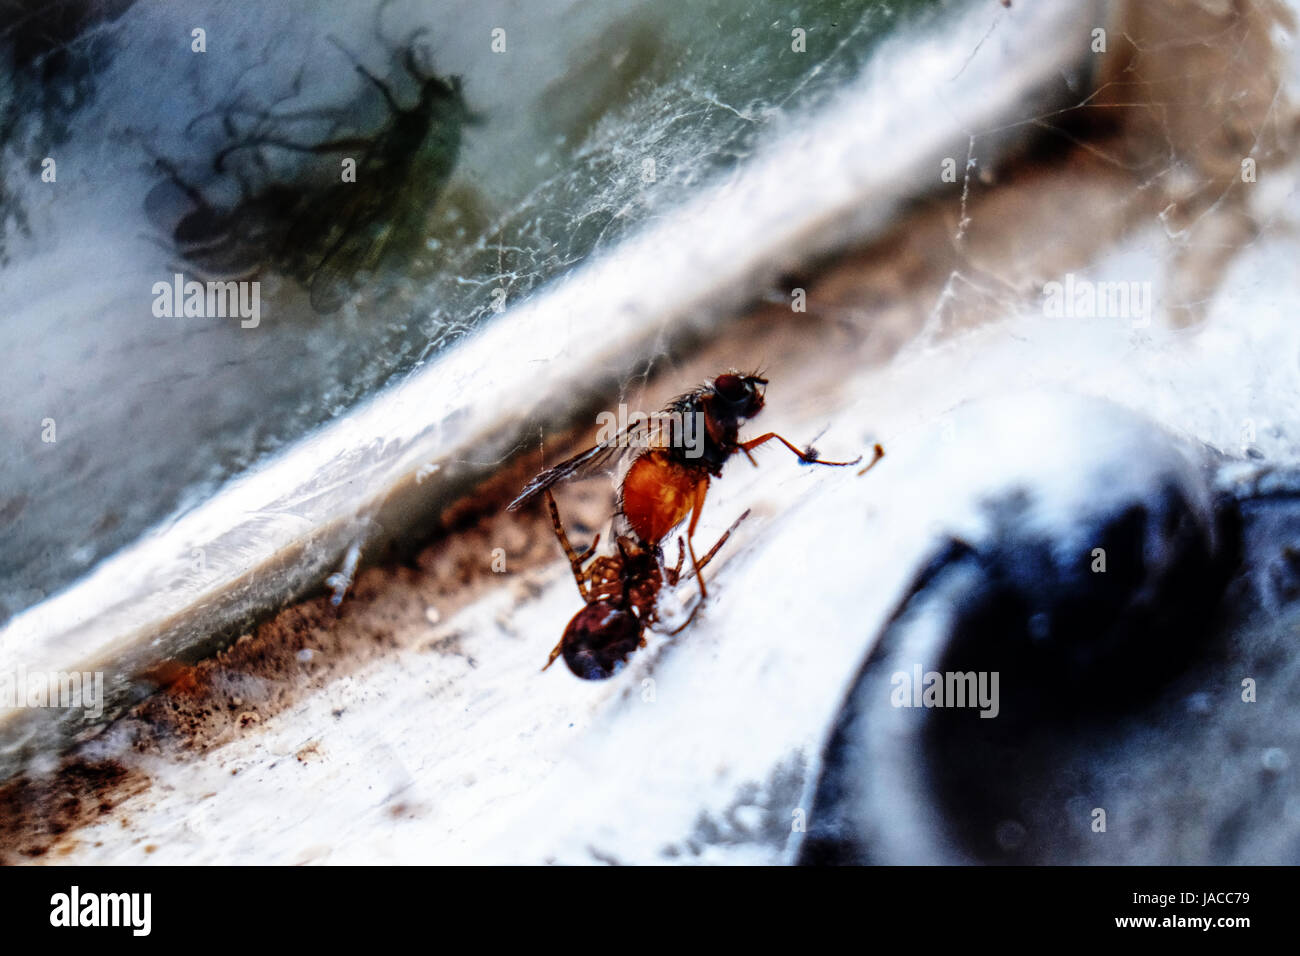 A spider catching a fly in its web - Stock Image